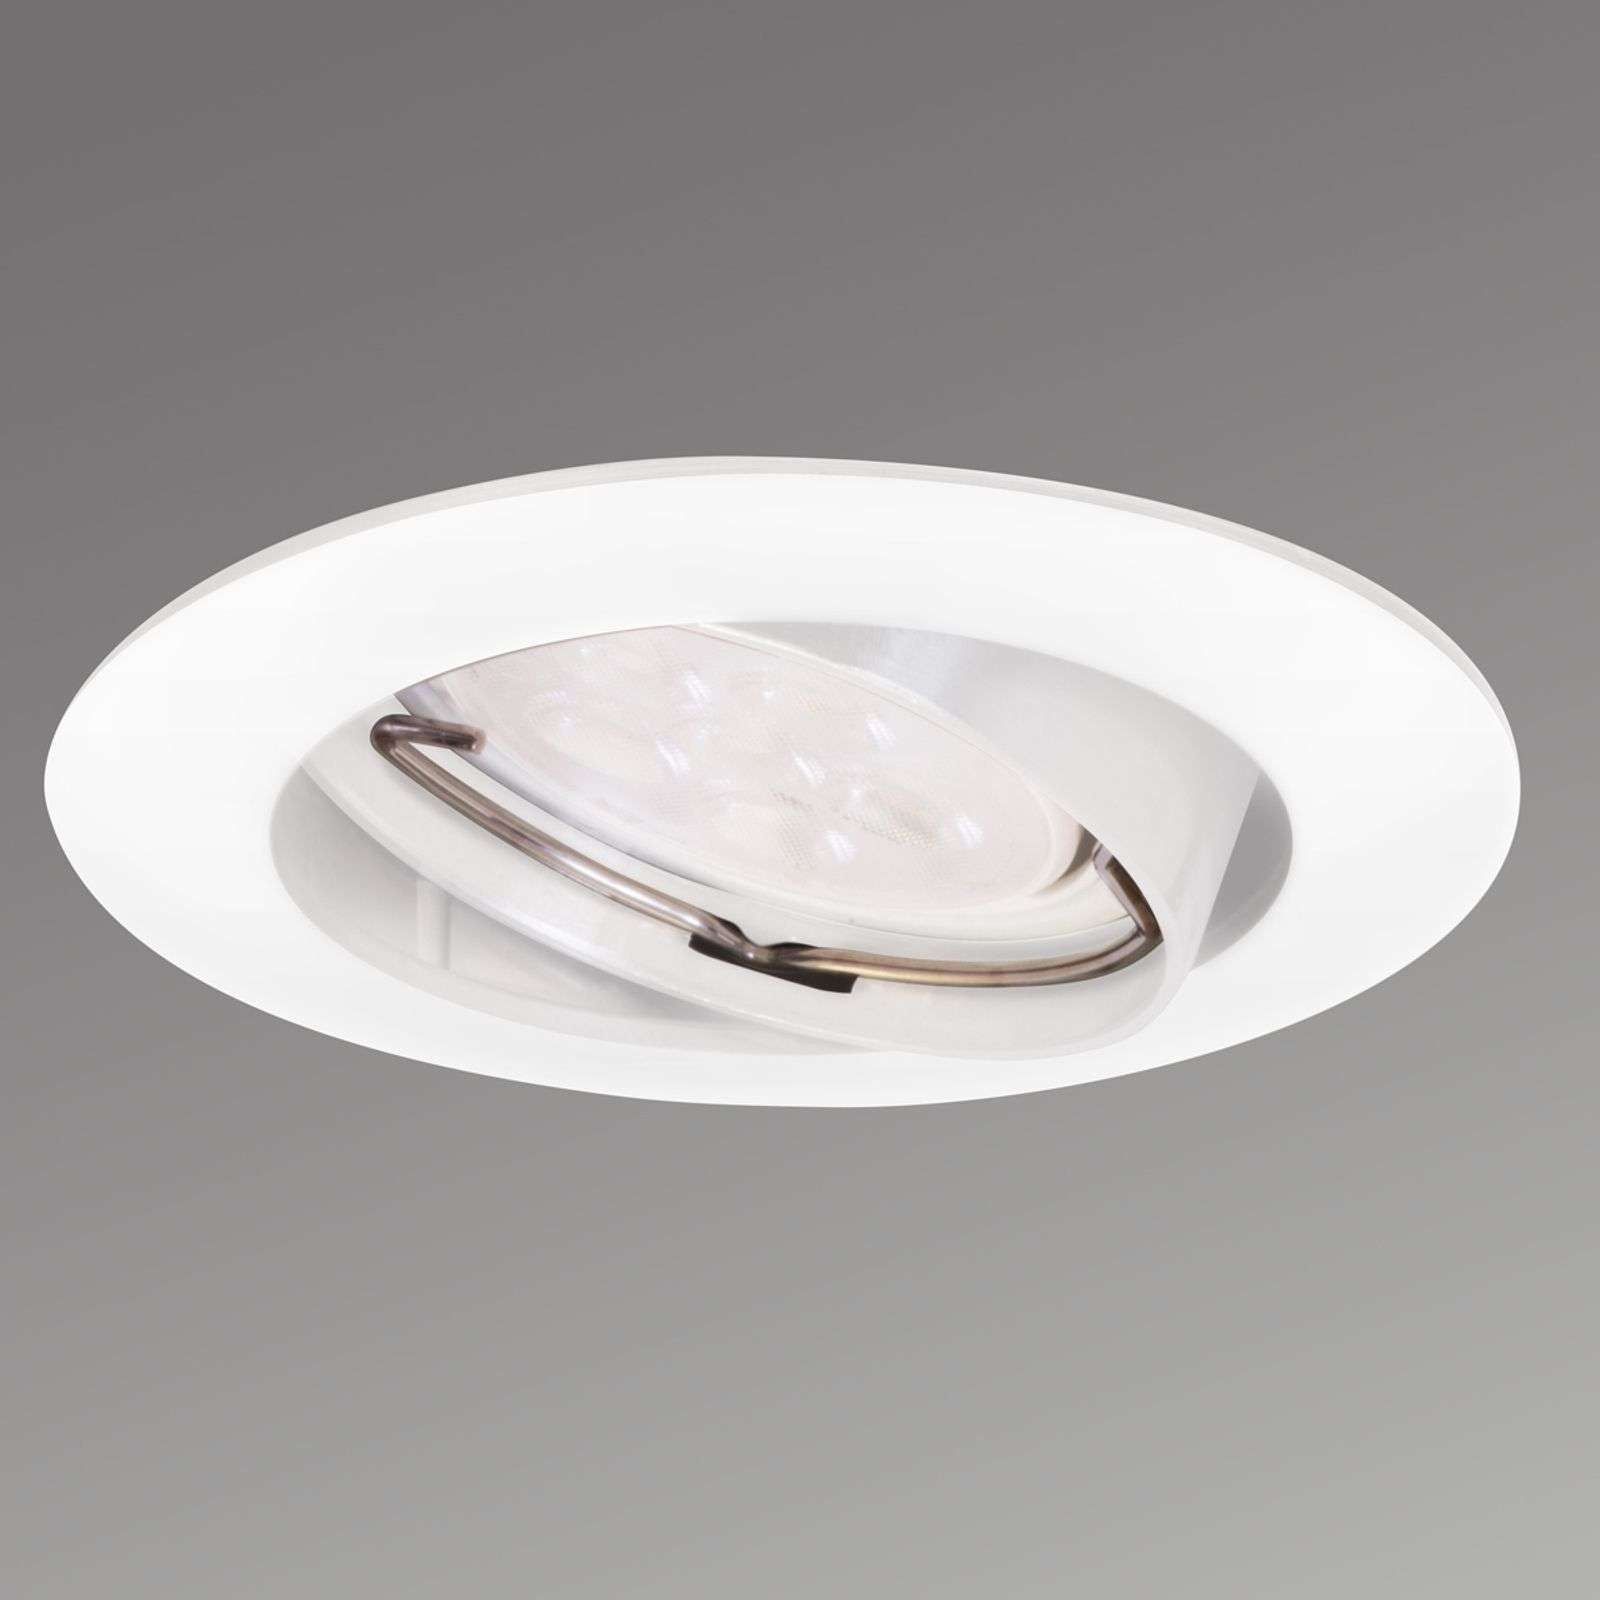 Pivotable Downlight DIM LED recessed spot white